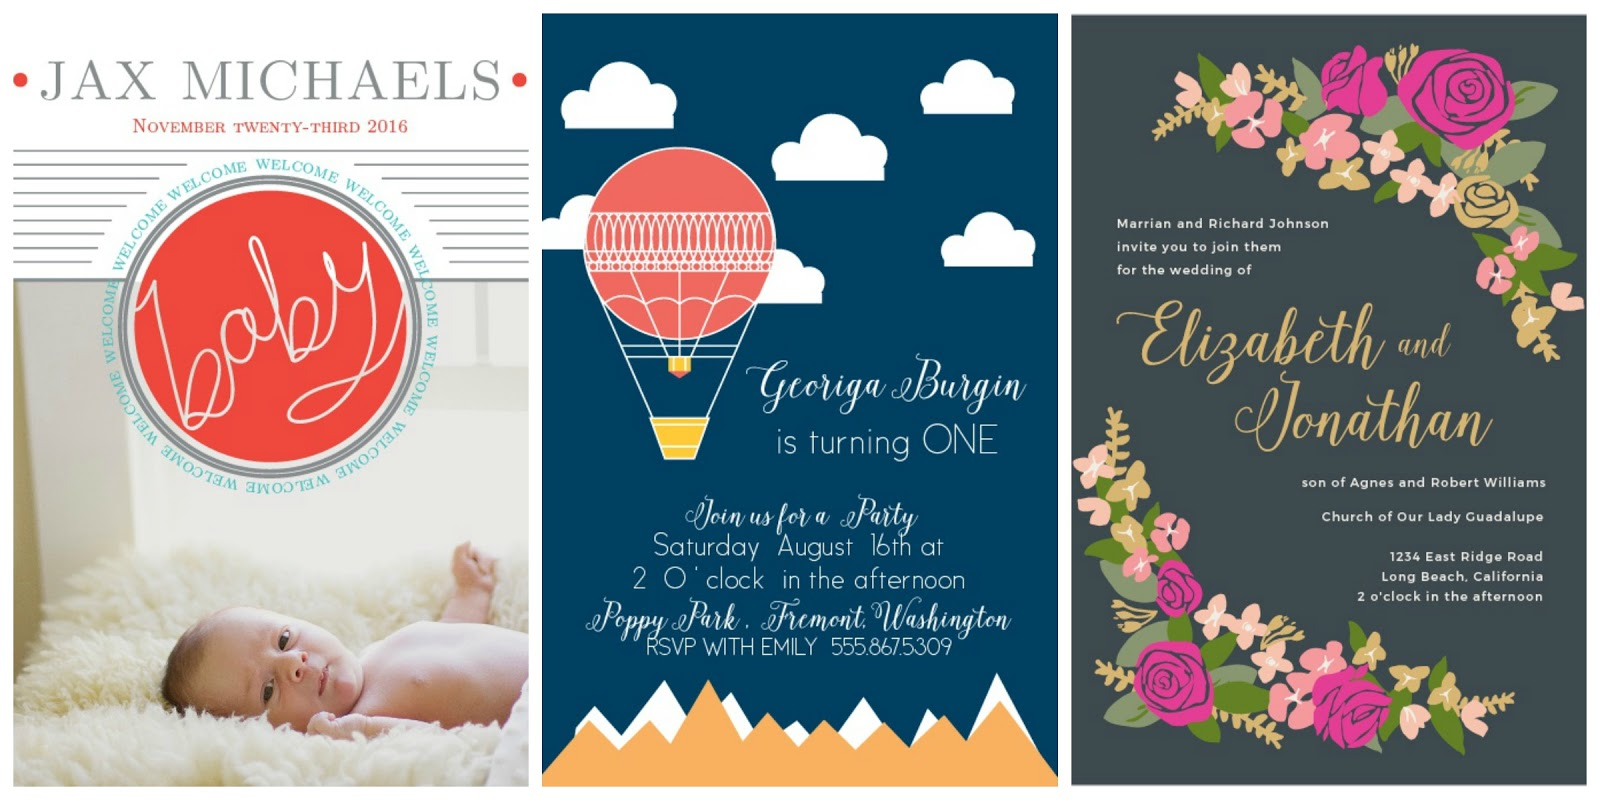 basic invite the cutest in custom stationery and invitations